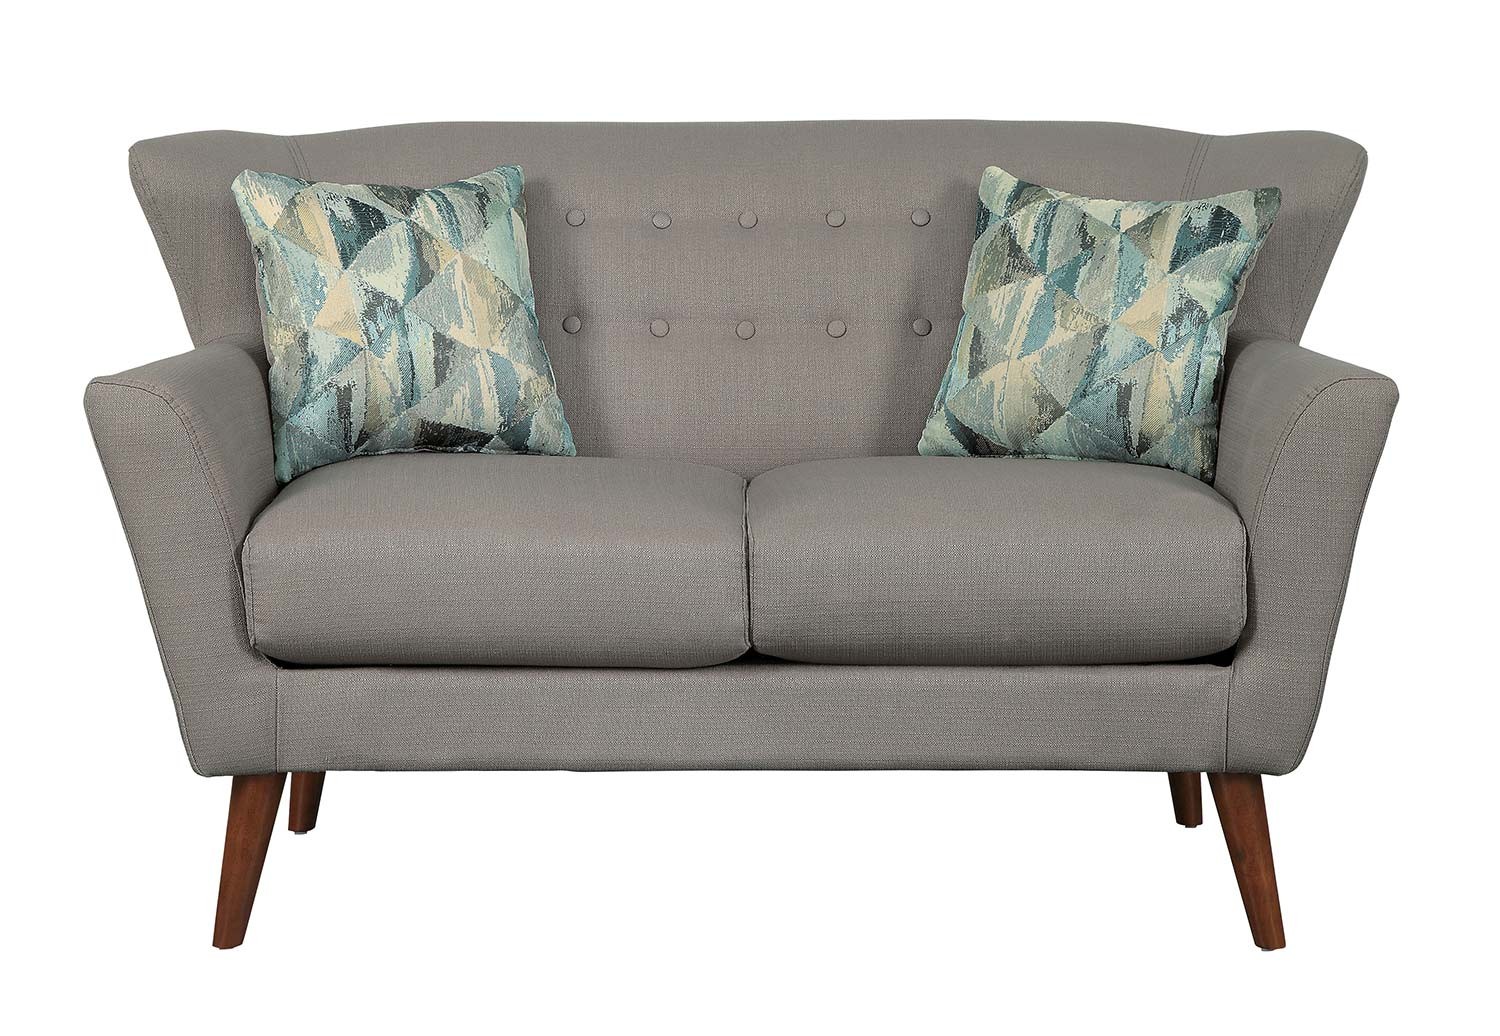 Homelegance Maja Love Seat - Gray